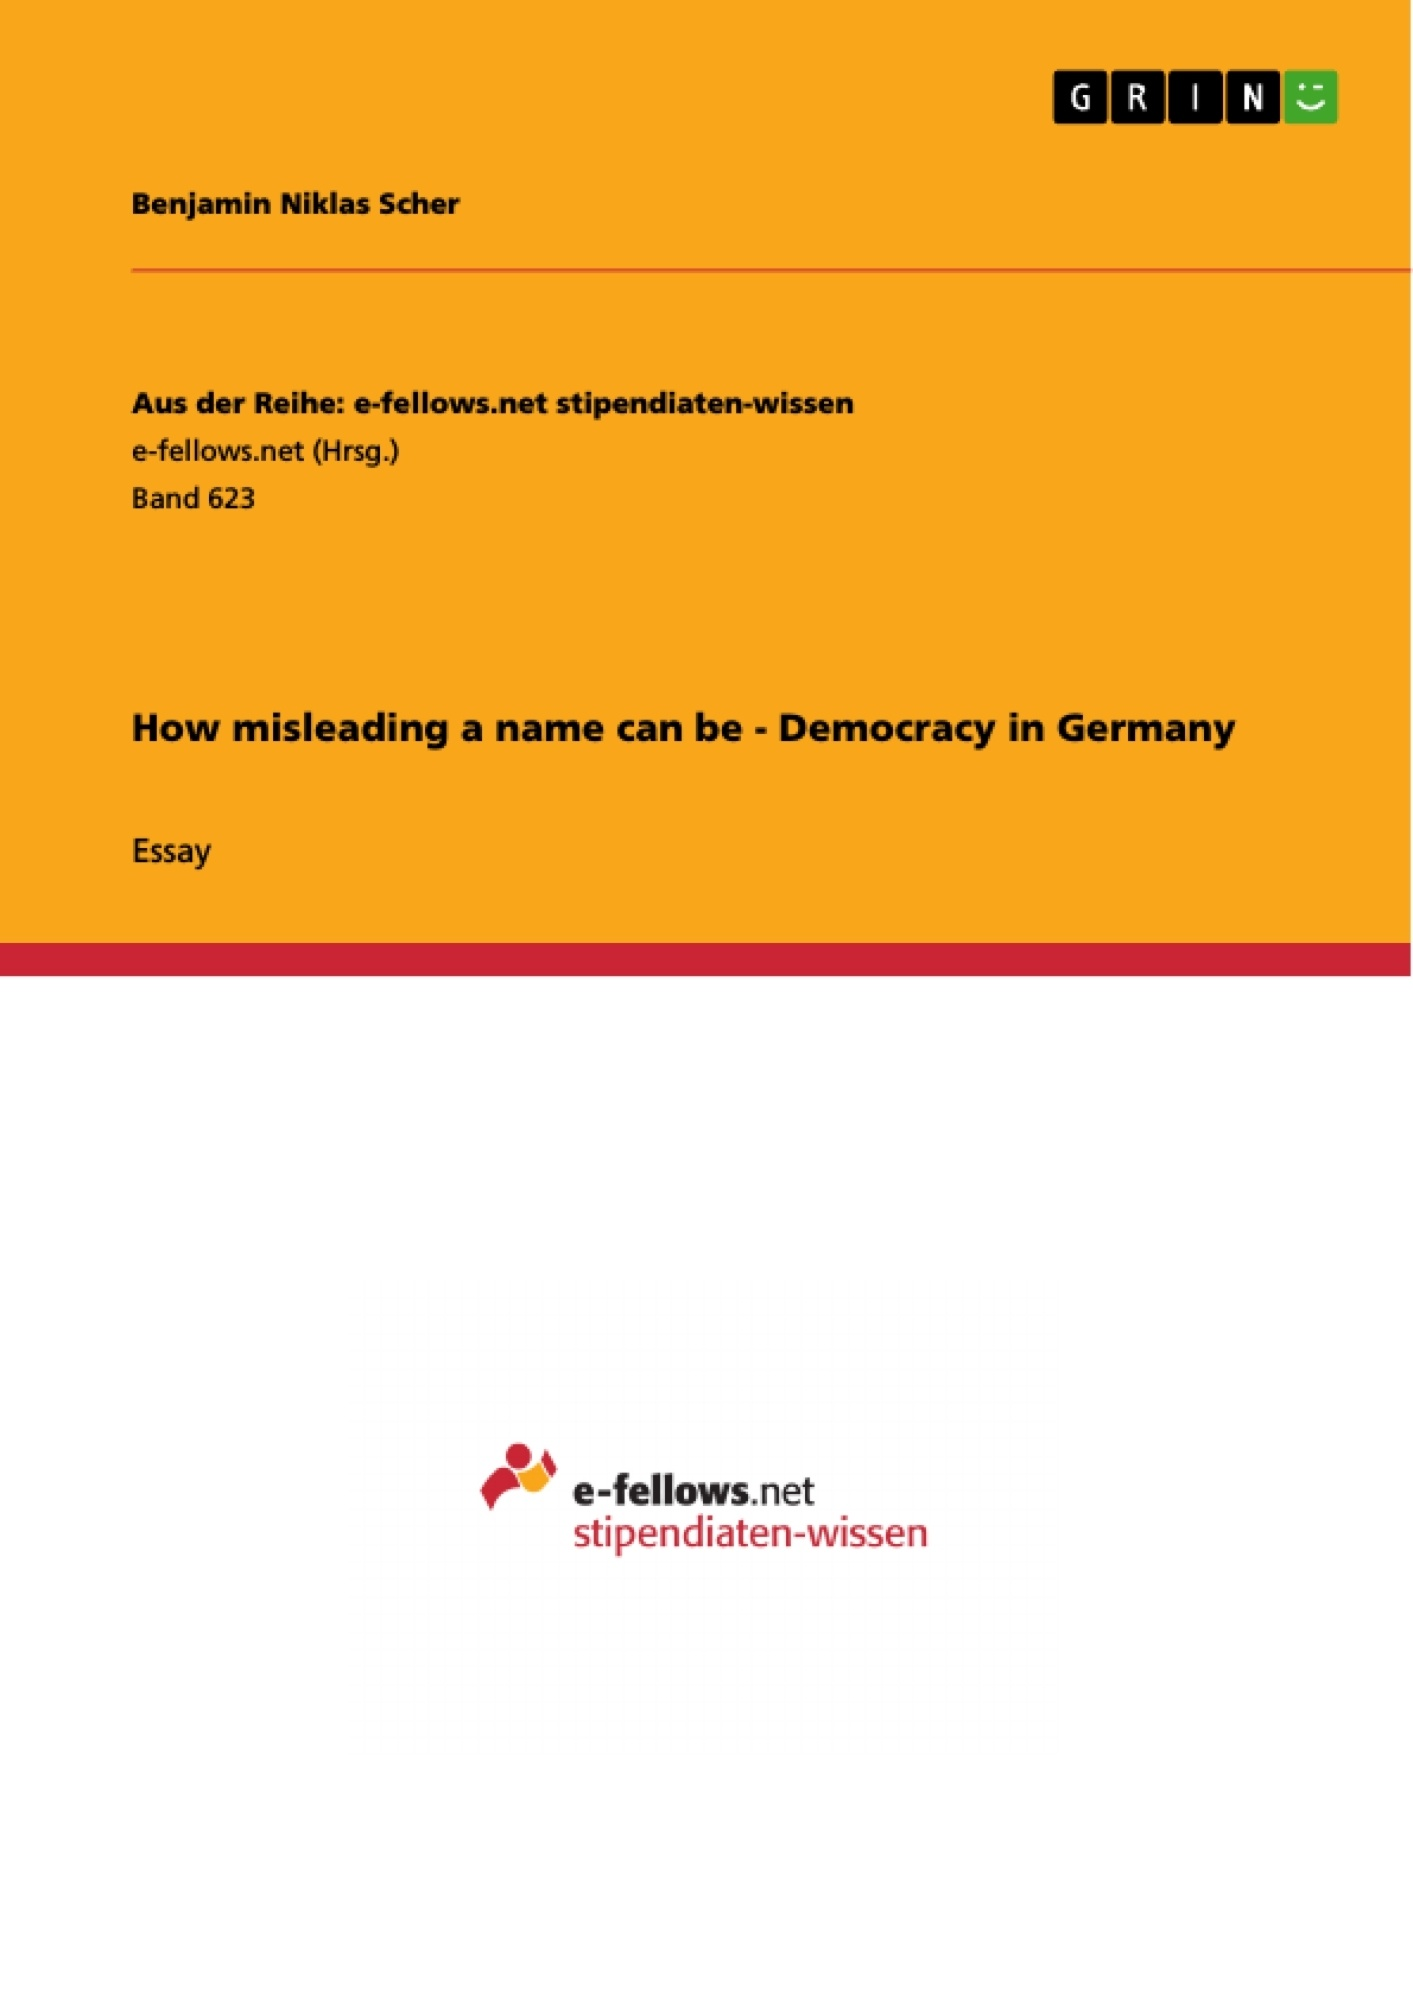 Title: How misleading a name can be - Democracy in Germany